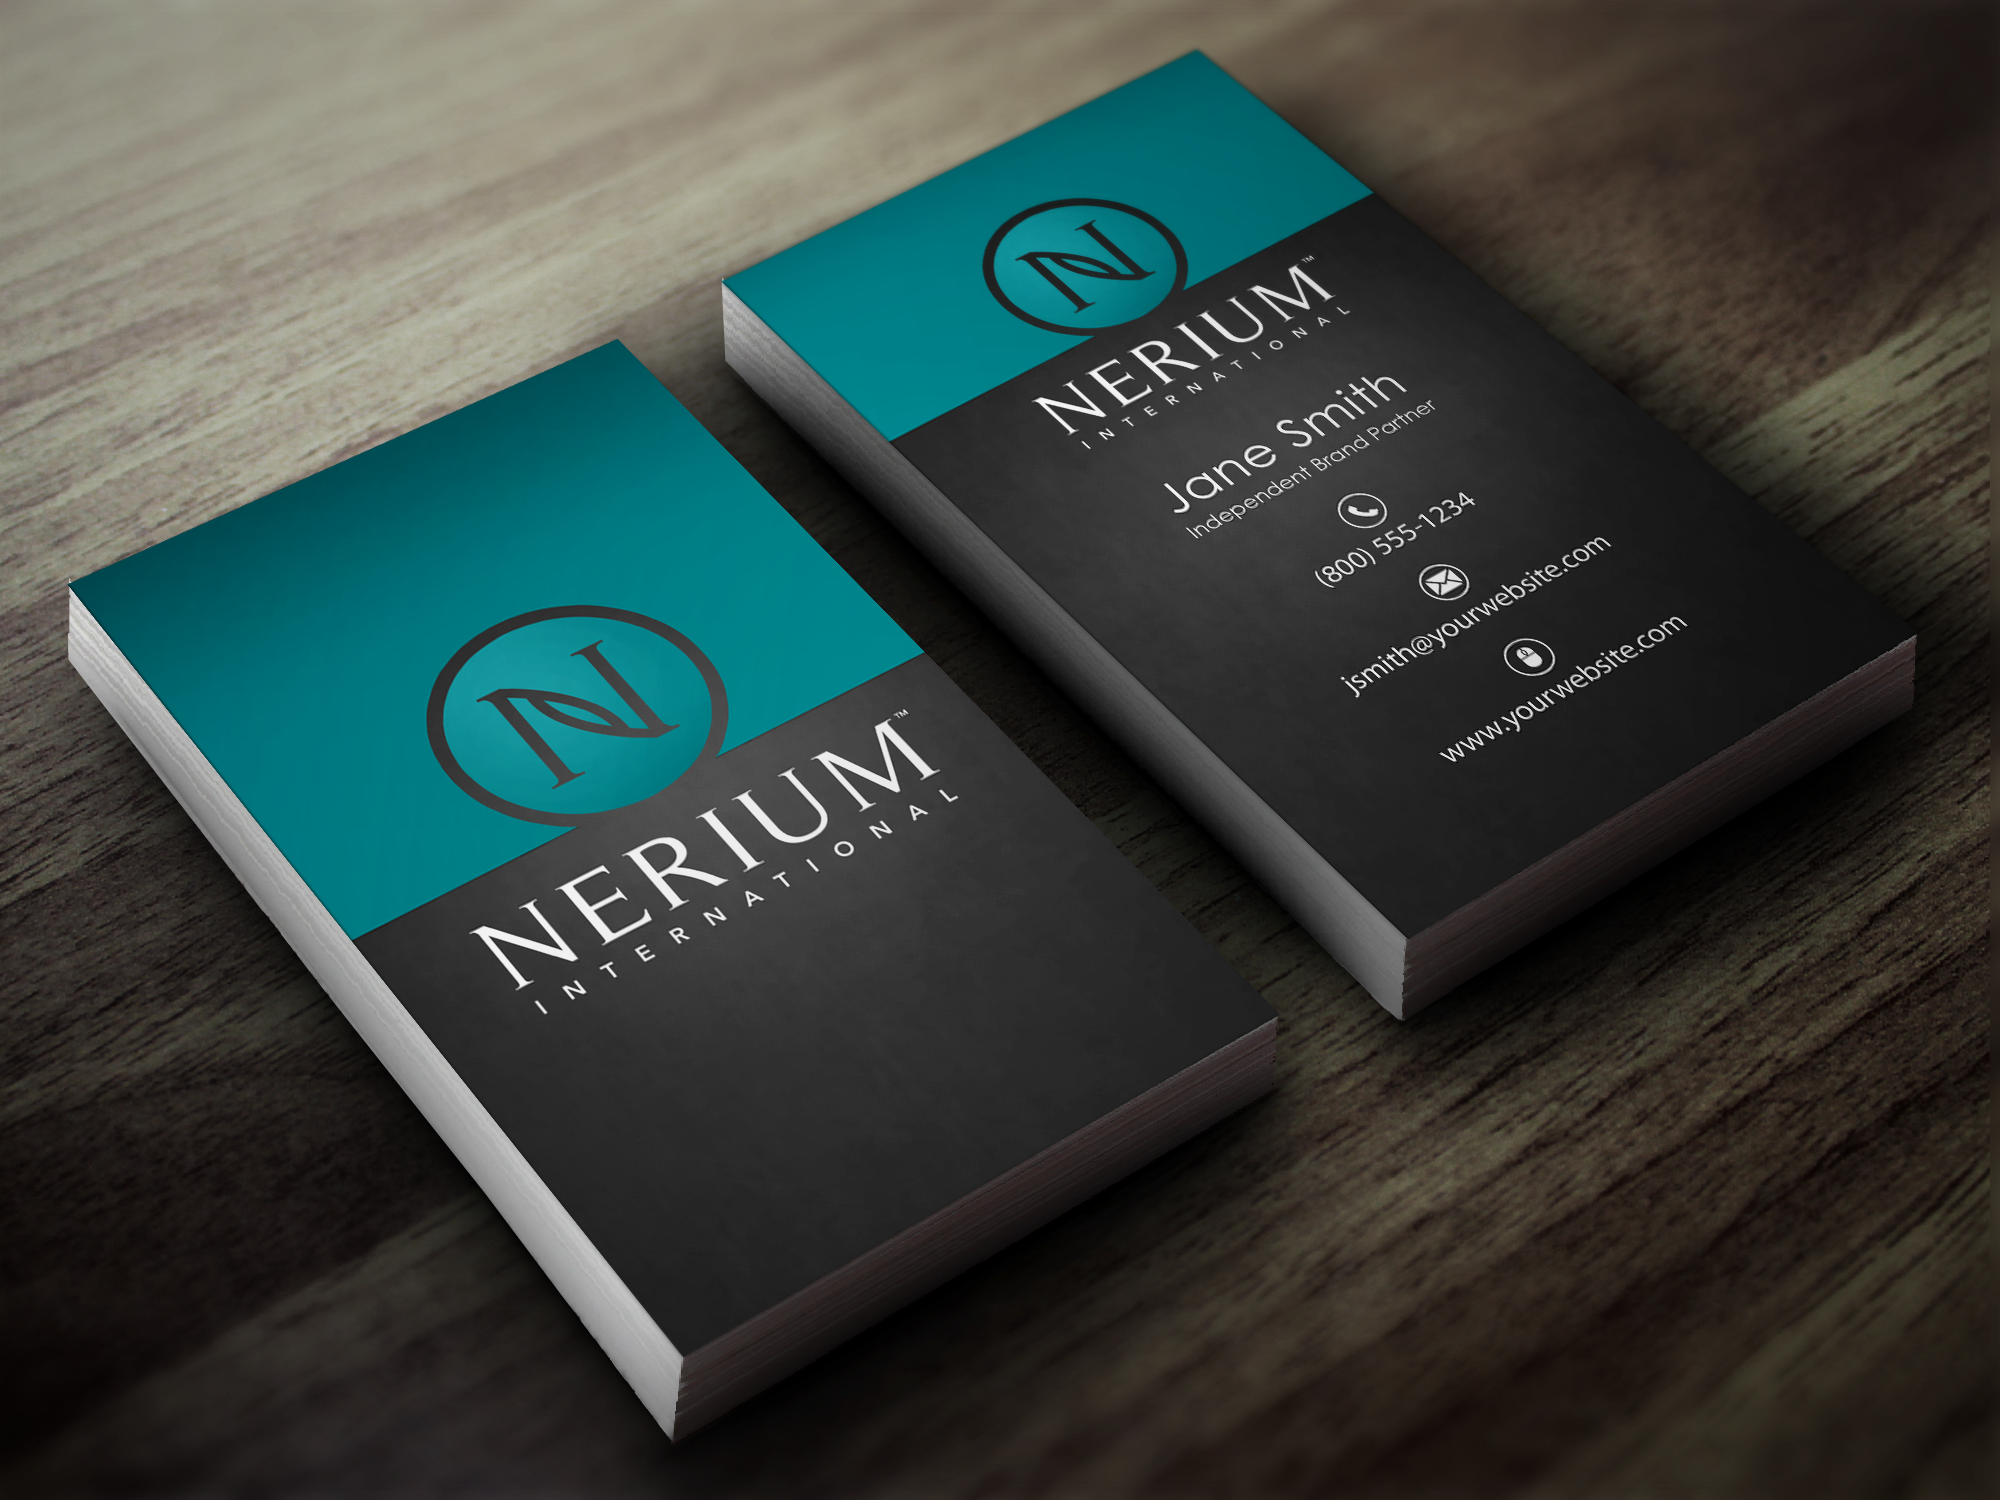 New Business Cards Just For Nerium Brand Partners Mlm Nerium Print Paper Graphicdesign Busines Printing Business Cards Free Business Cards Contact Card